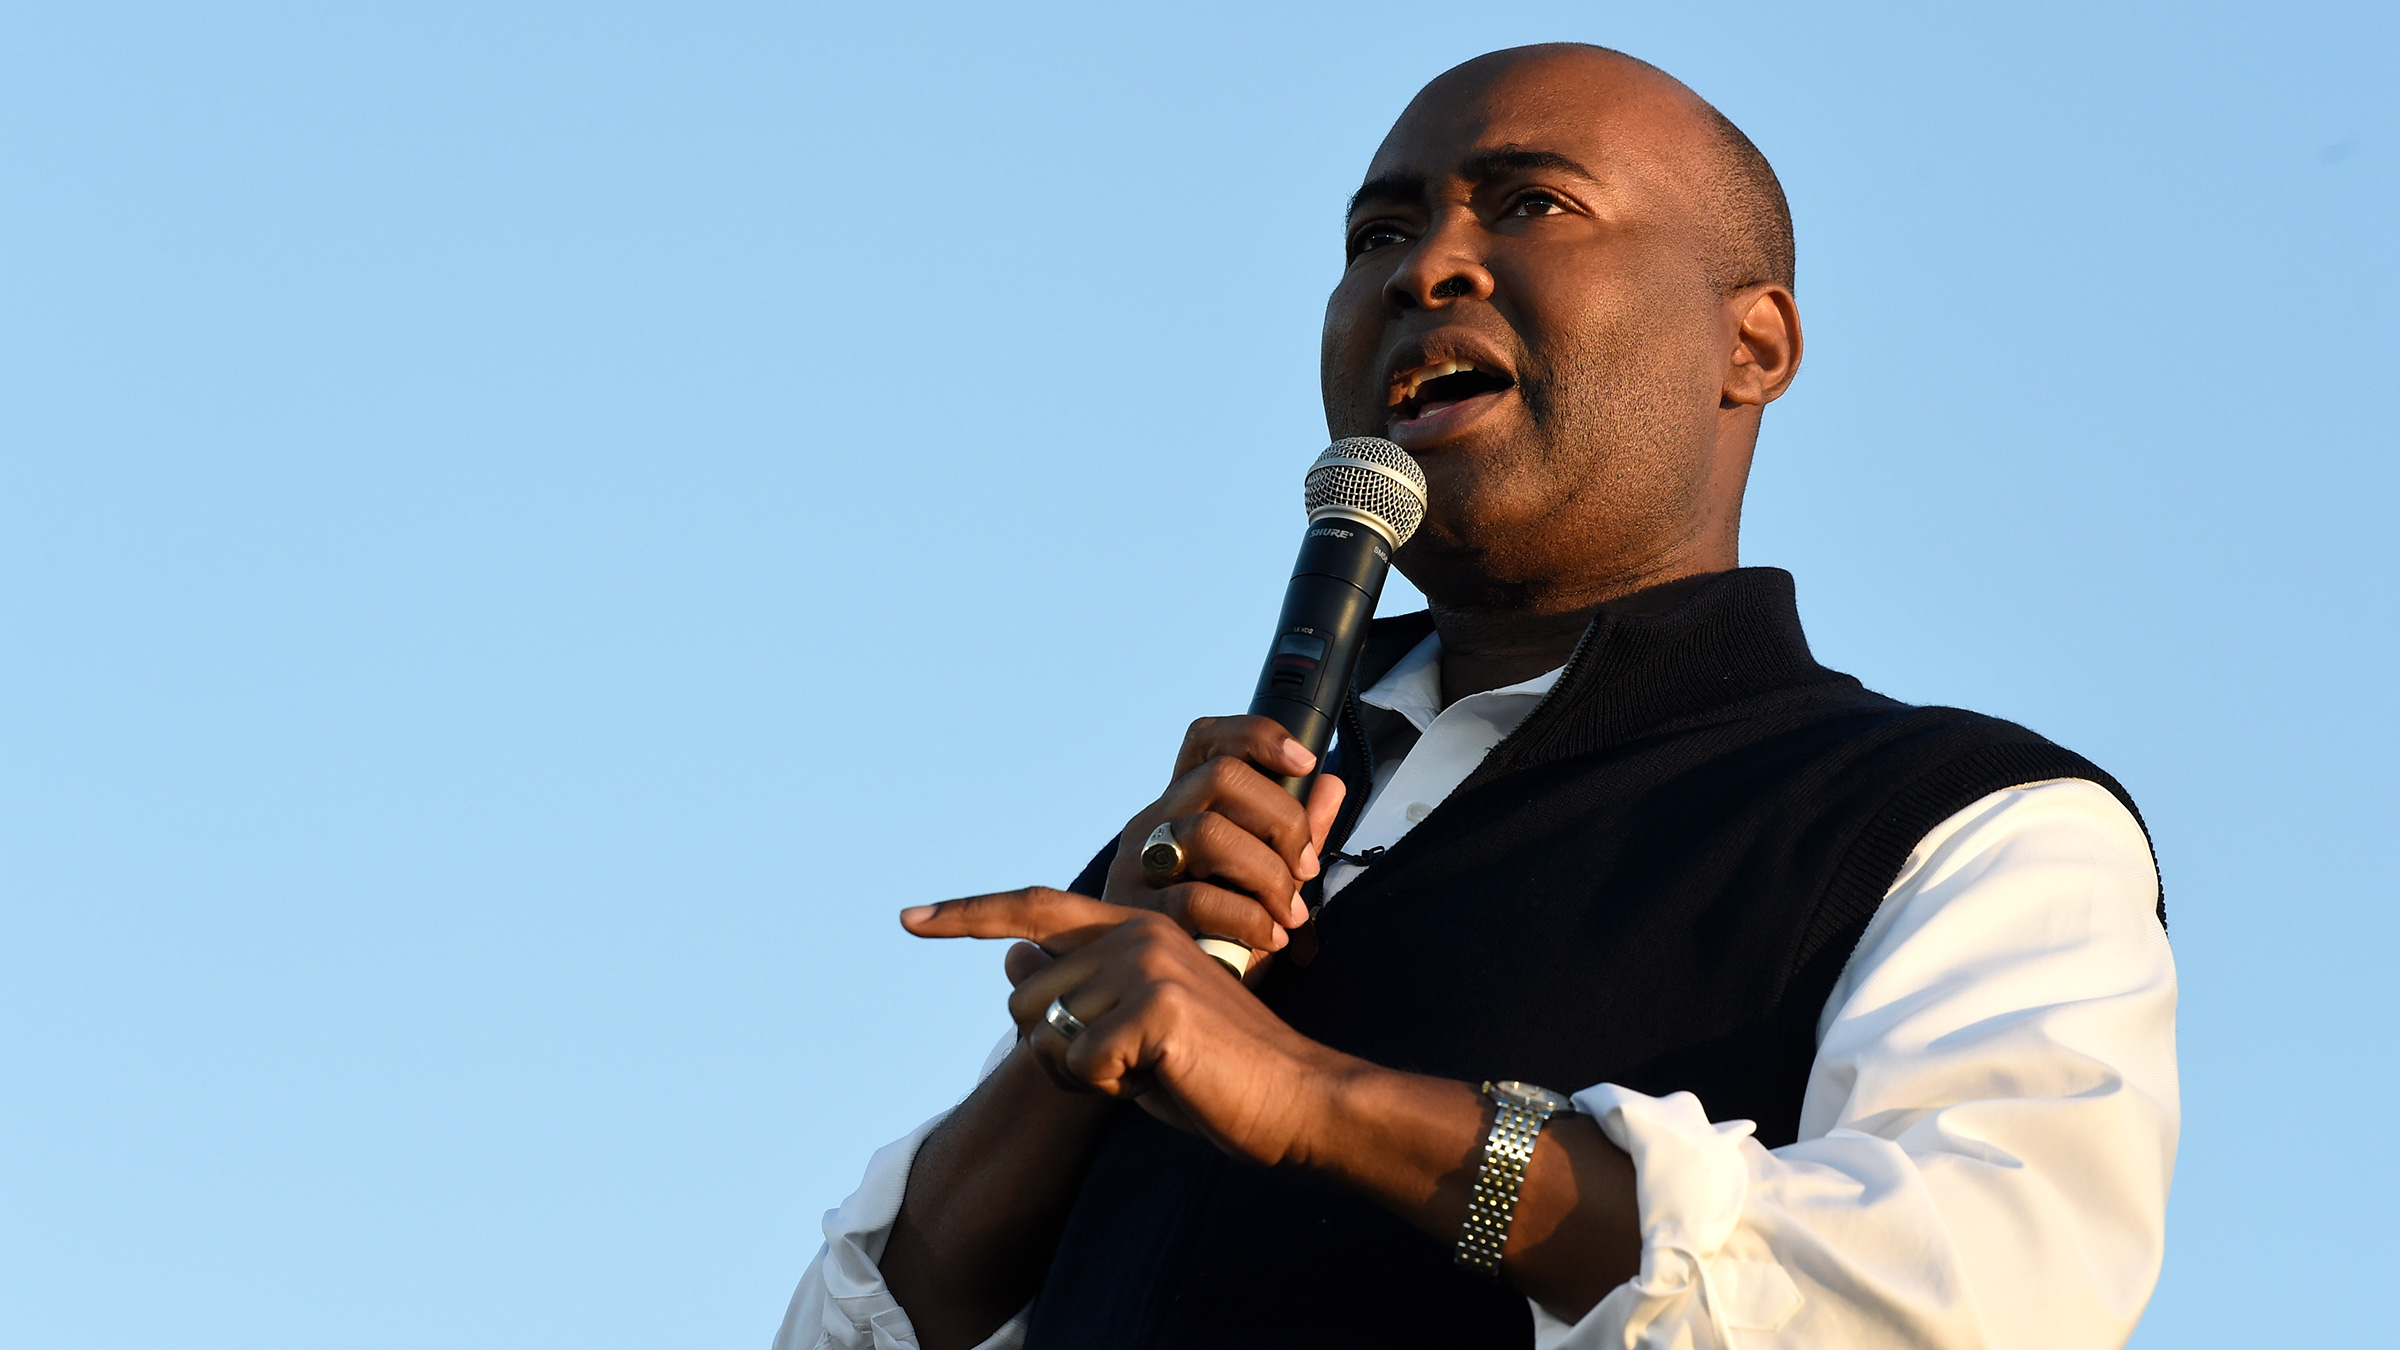 Jaime Harrison speaks at a campaign rally on October 17, 2020 in North Charleston, South Carolina.